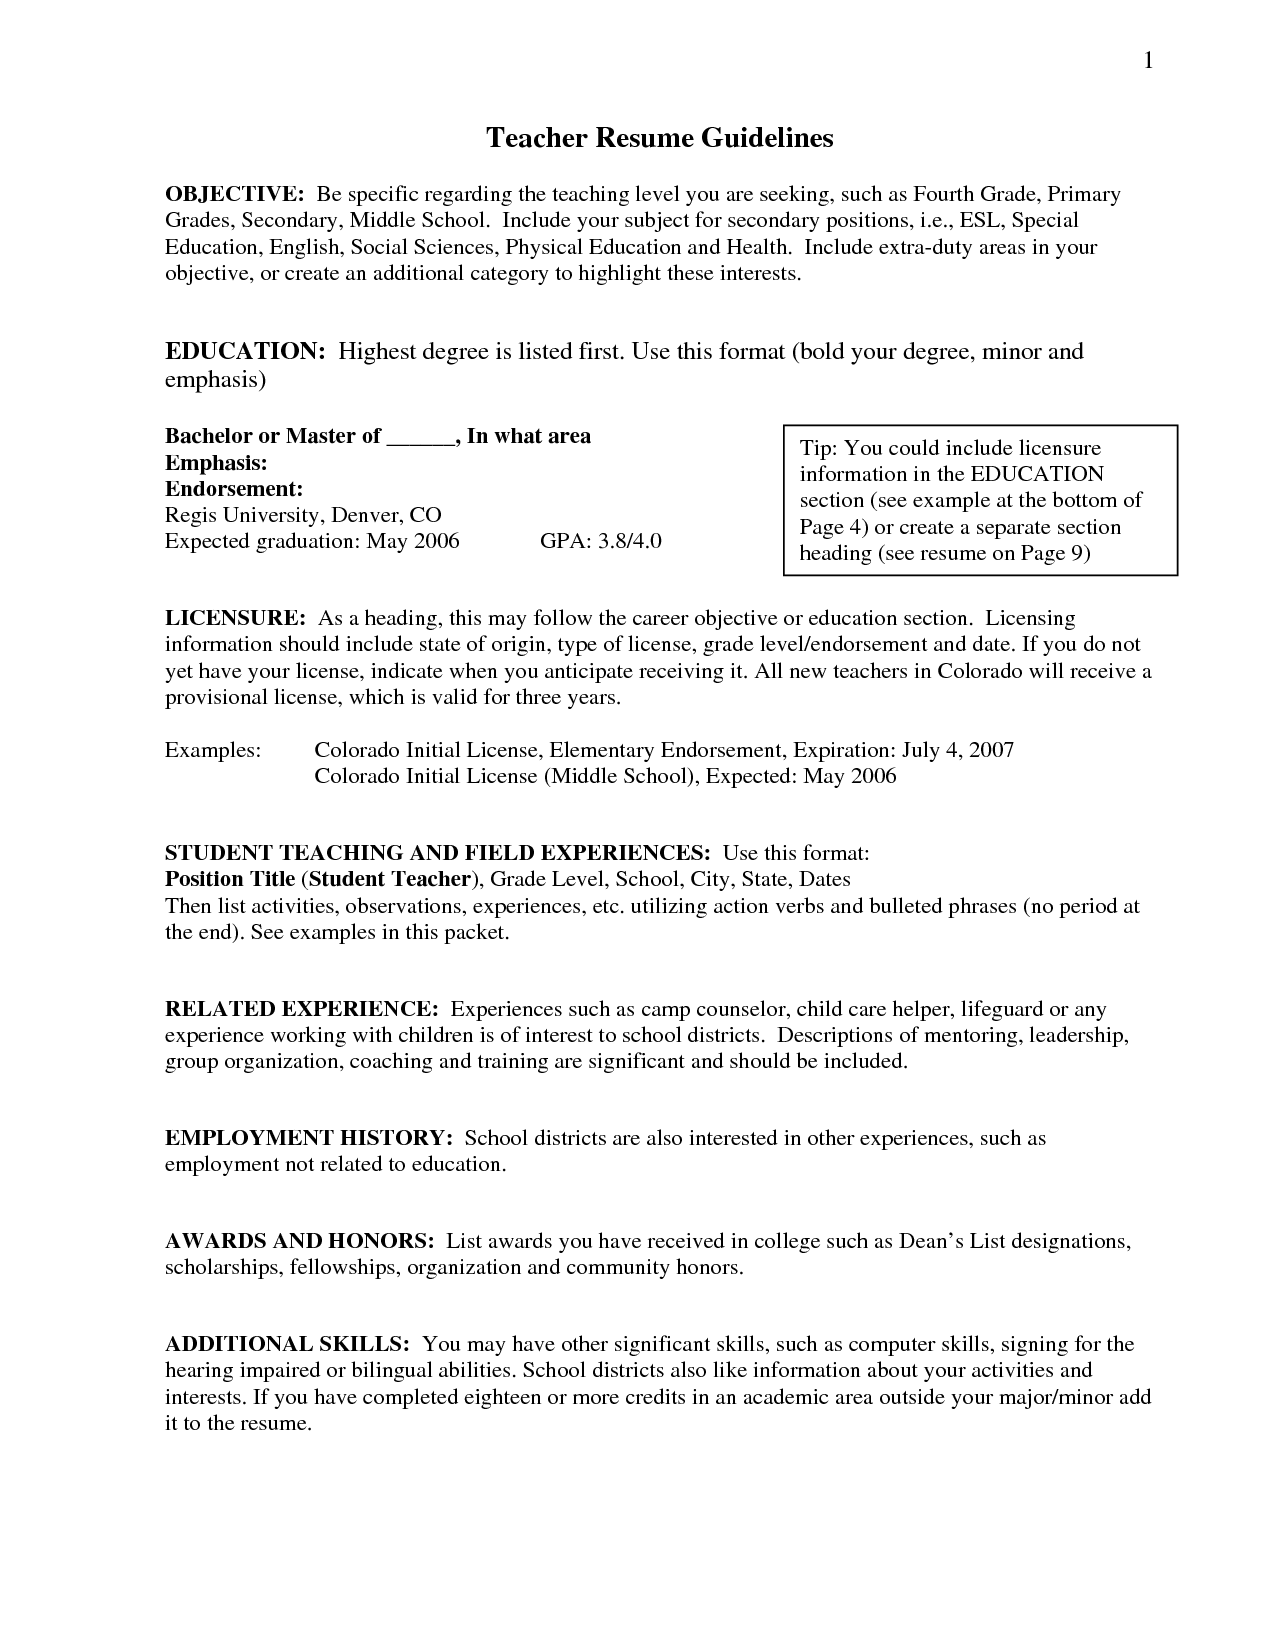 Additional Skills On Resume Amusing Resumes For Teachers Httpwww.teachersresumes.au Teachers .